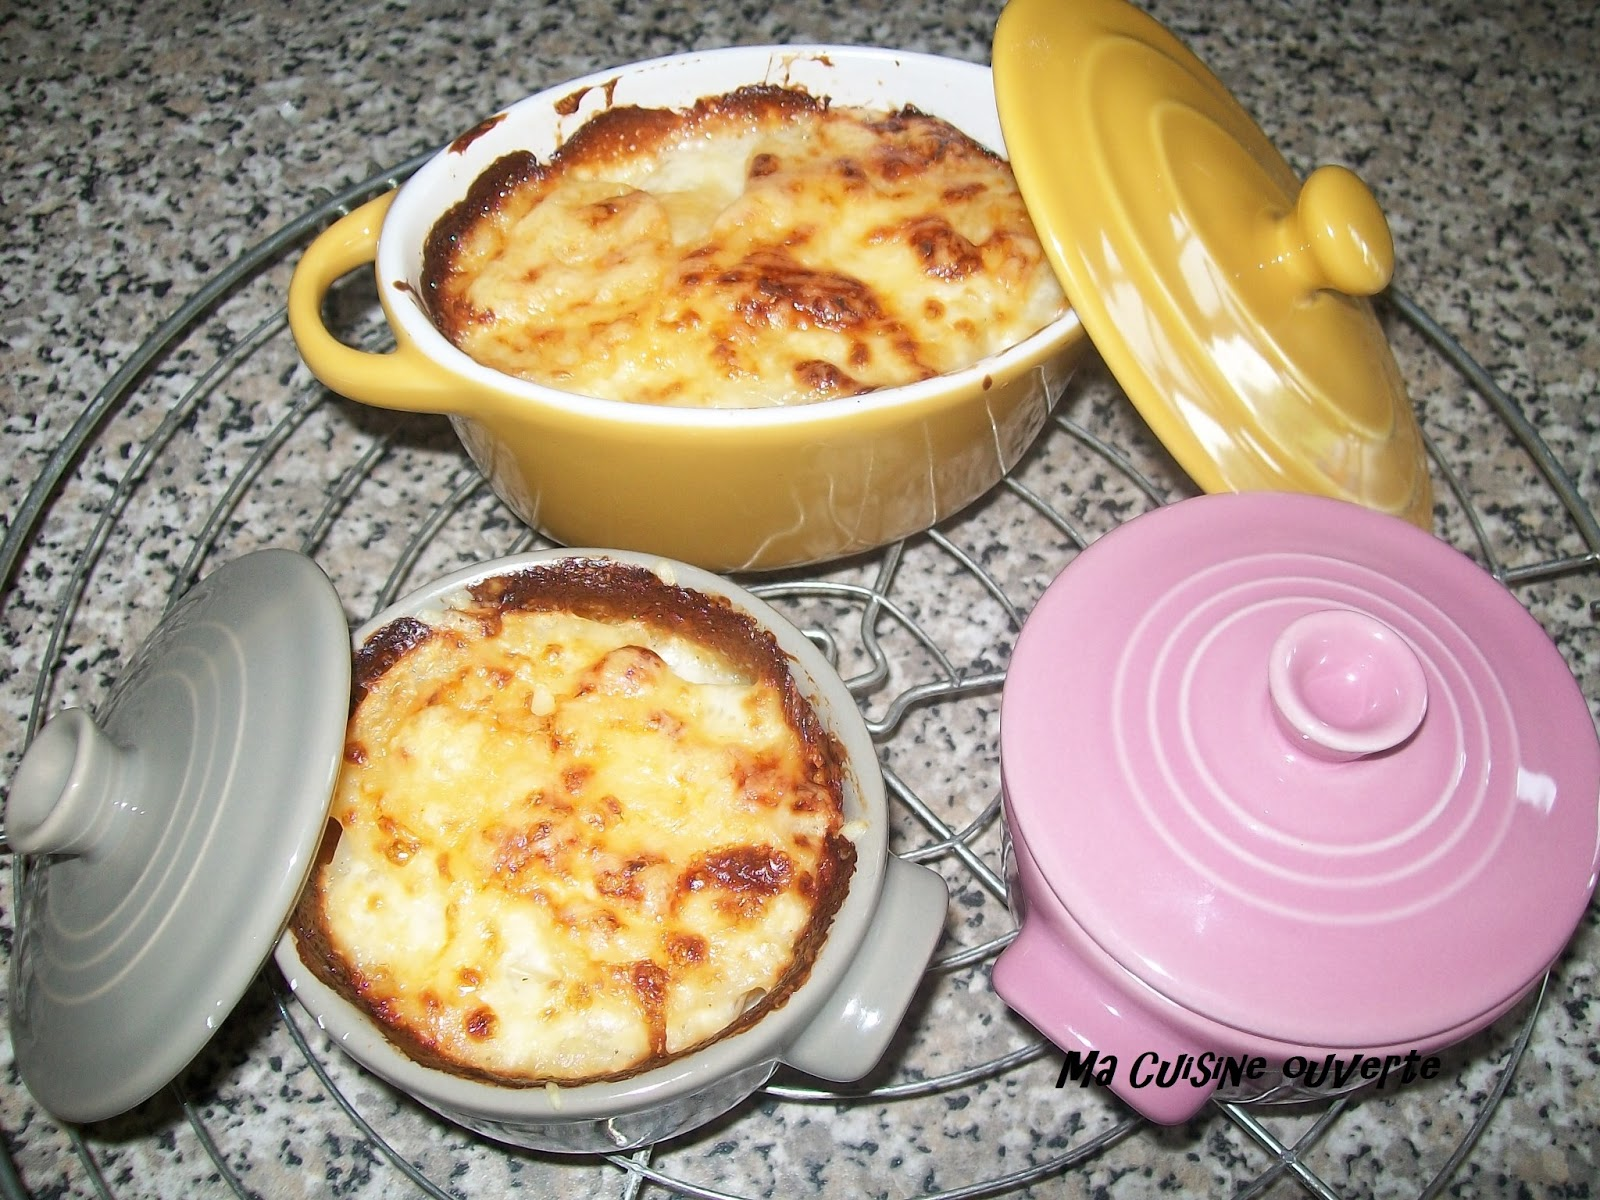 ma cuisine ouverte gratin dauphinois. Black Bedroom Furniture Sets. Home Design Ideas